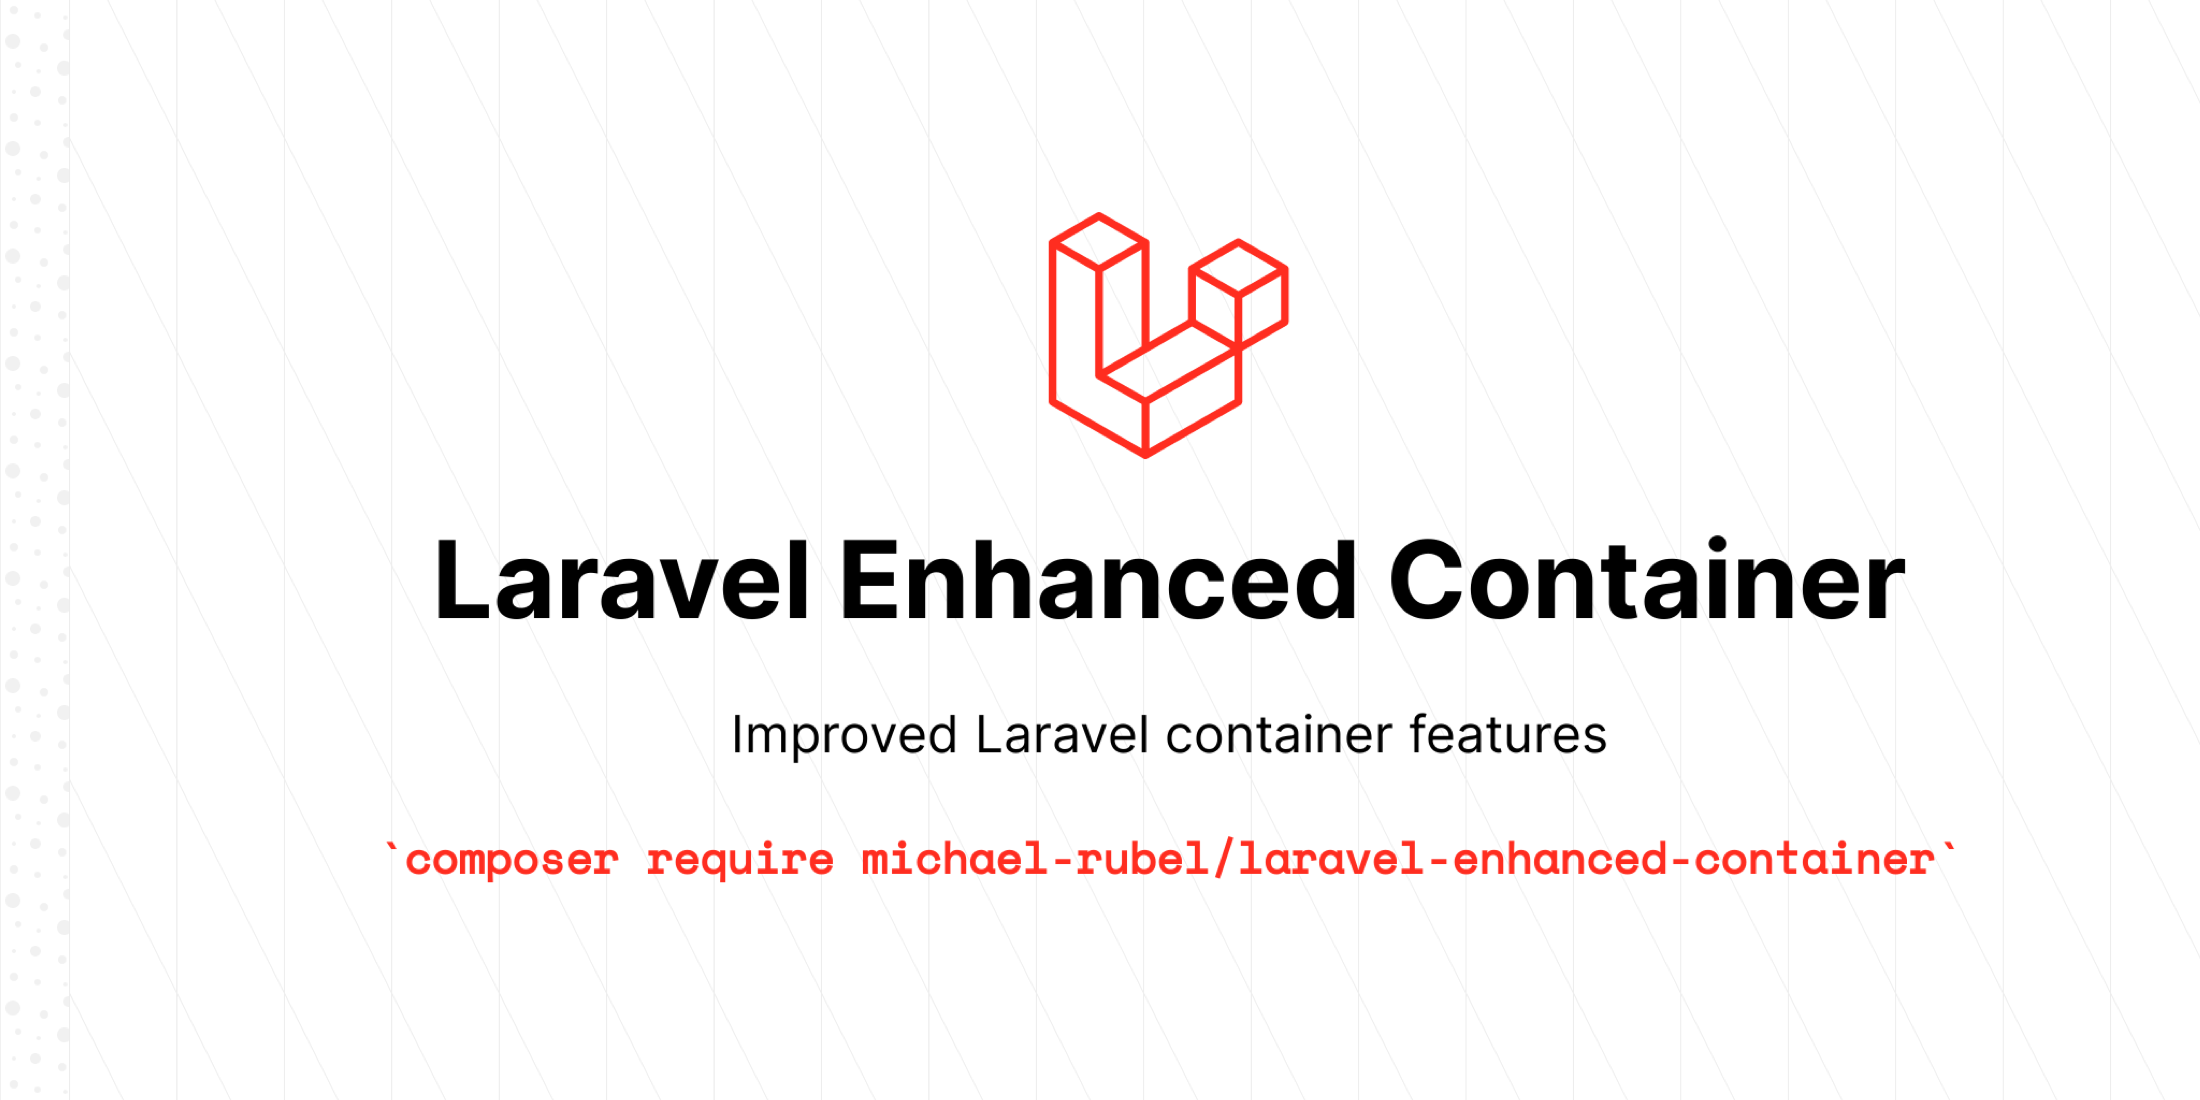 laravel-enhanced-container-featured.png